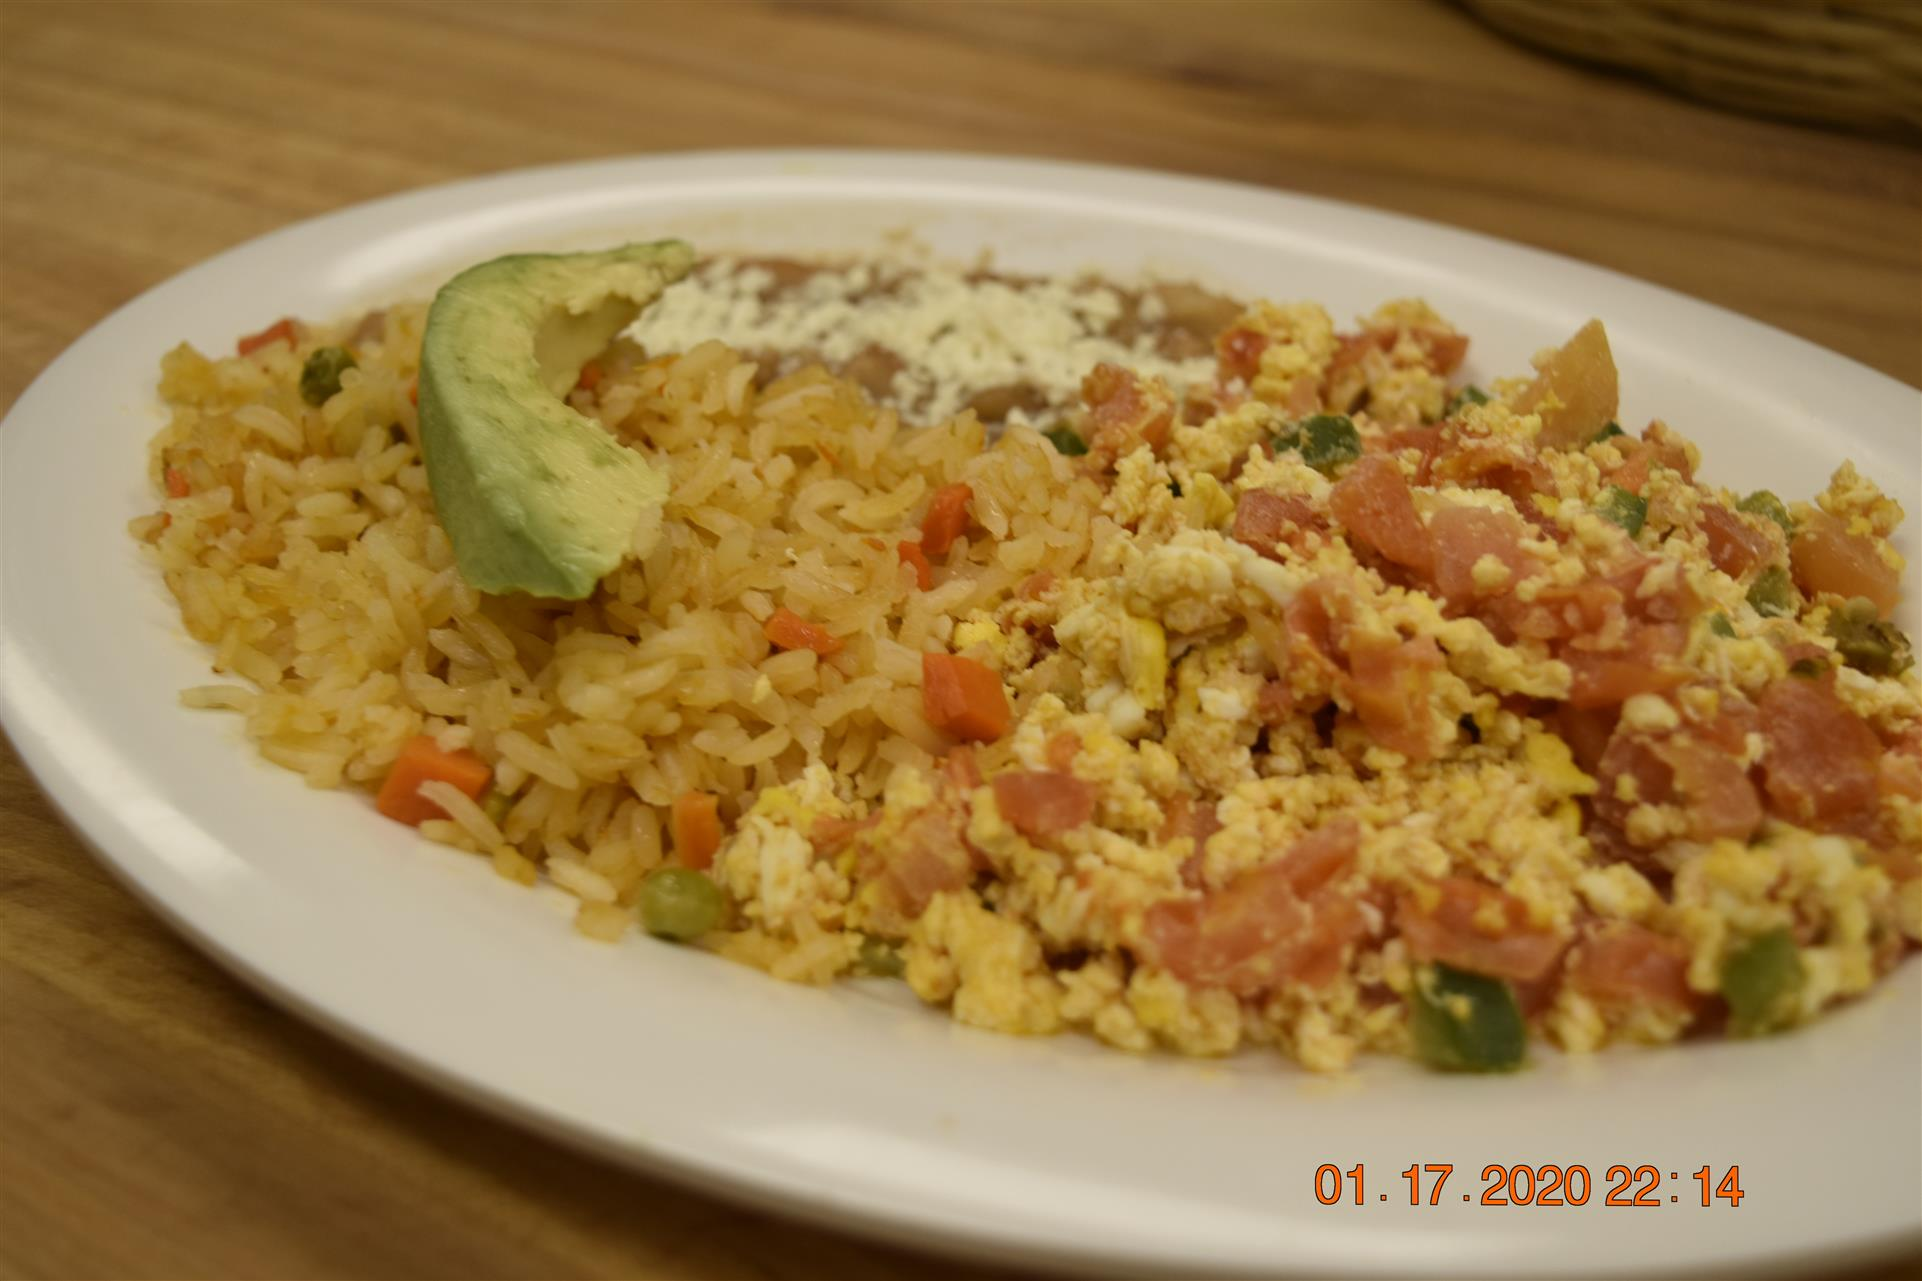 scrambled eggs with fried rice and beans